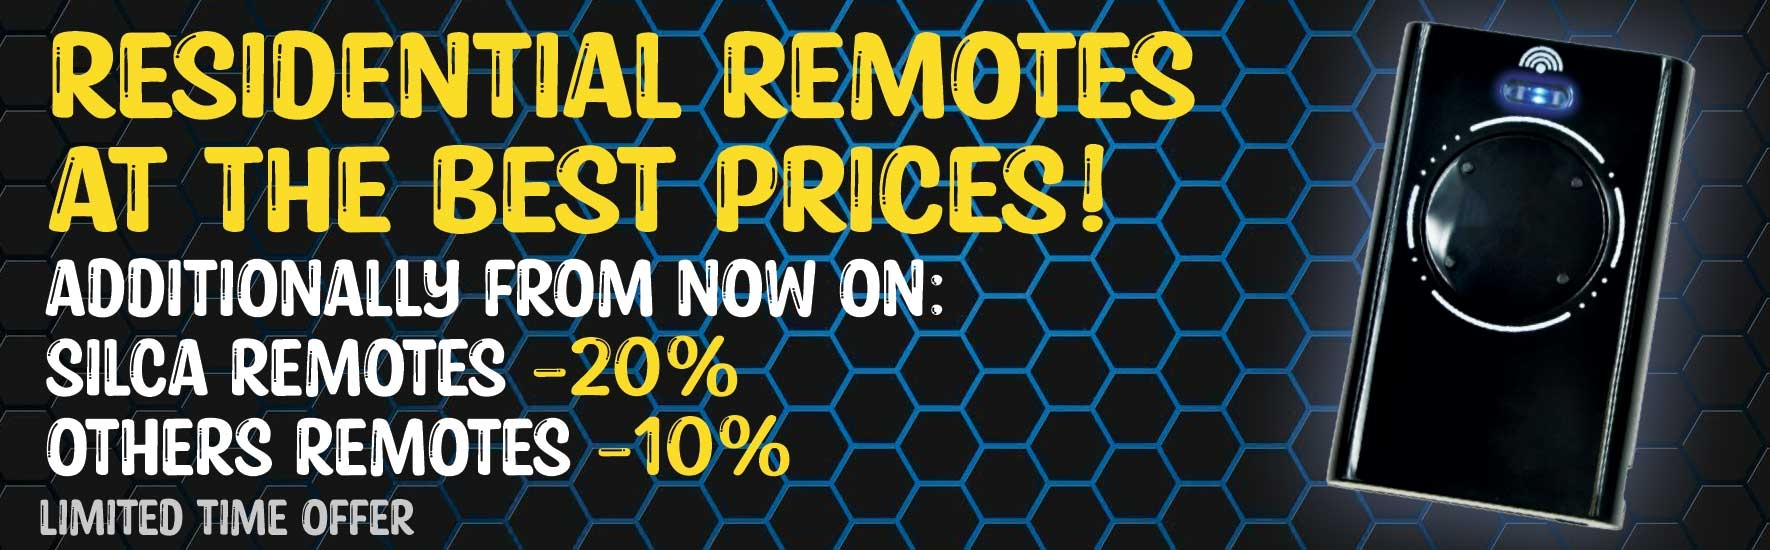 Residential Remotes